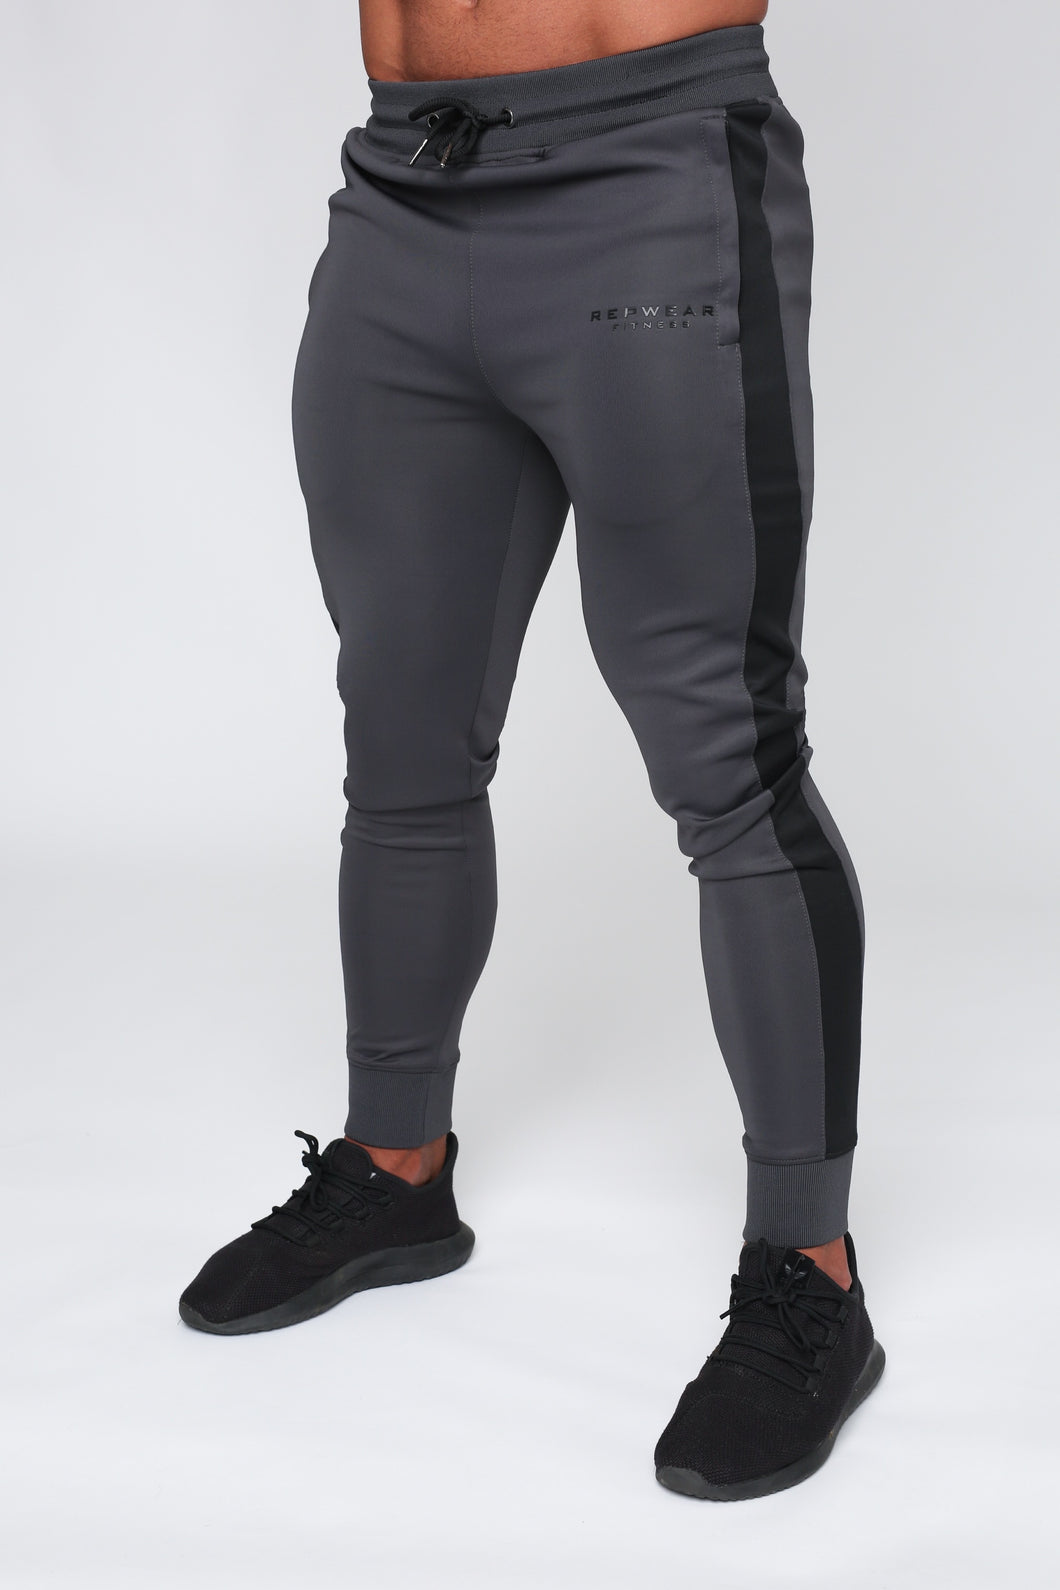 Repwear Fitness Original Poly Tracksuit Bottoms Grey